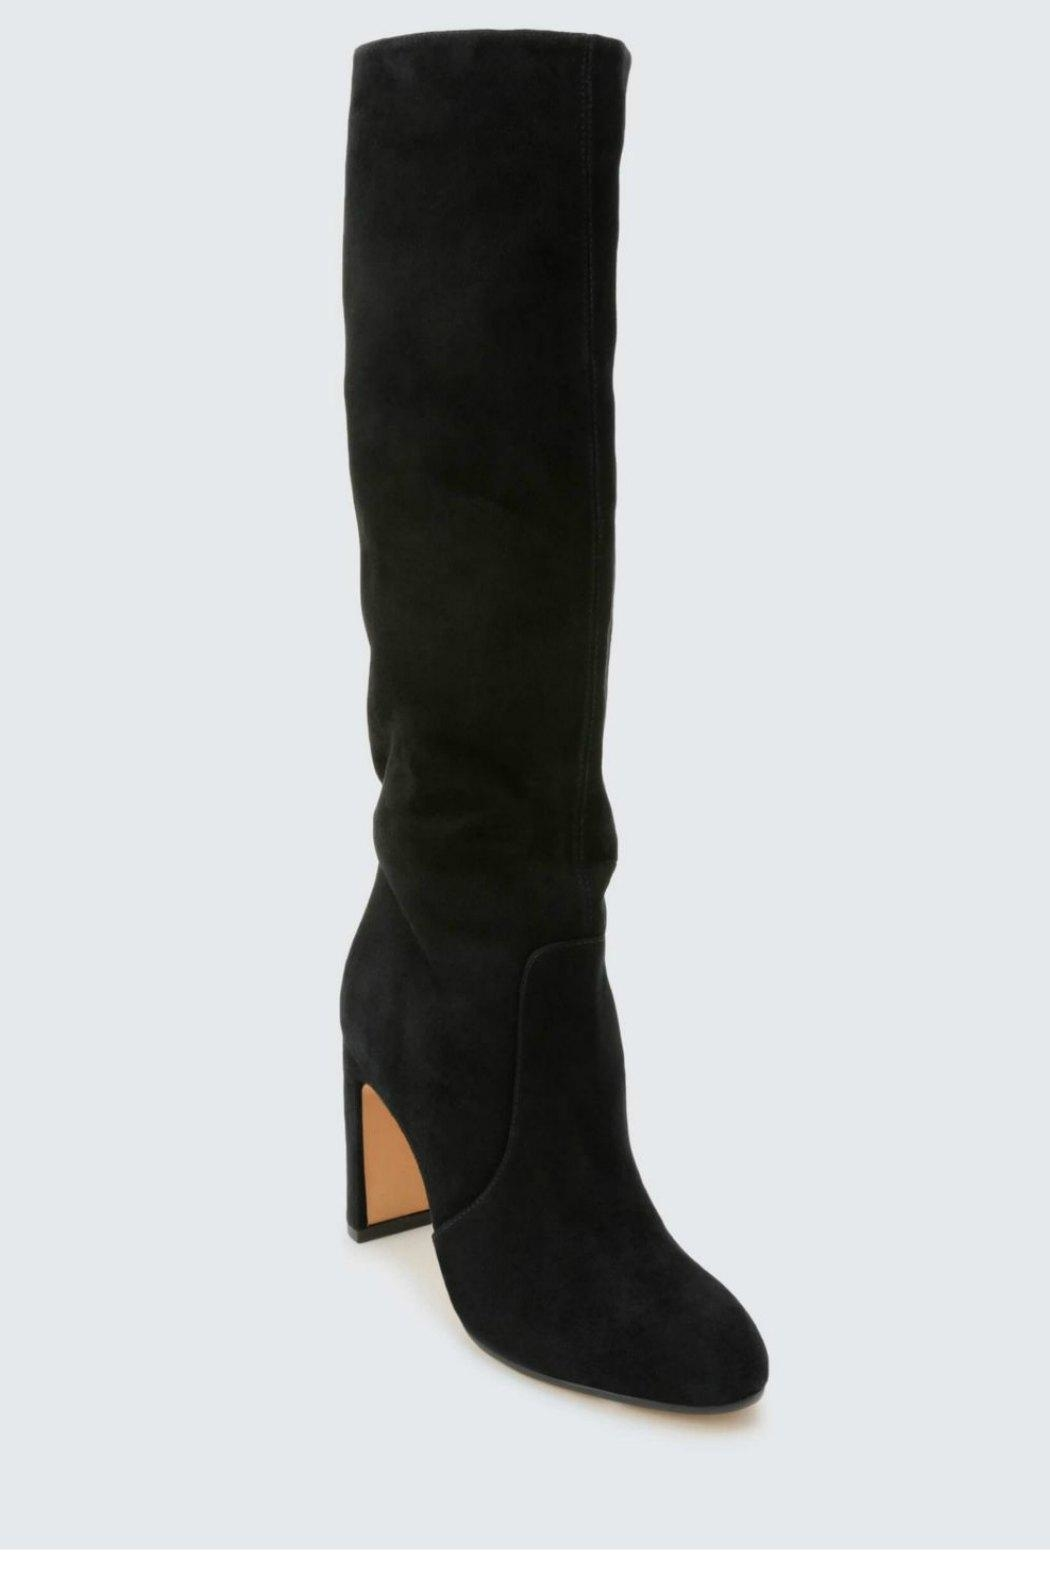 fb907233a7b7d Dolce Vita Coop Tall Boot from New Hampshire by Stiletto Shoes ...